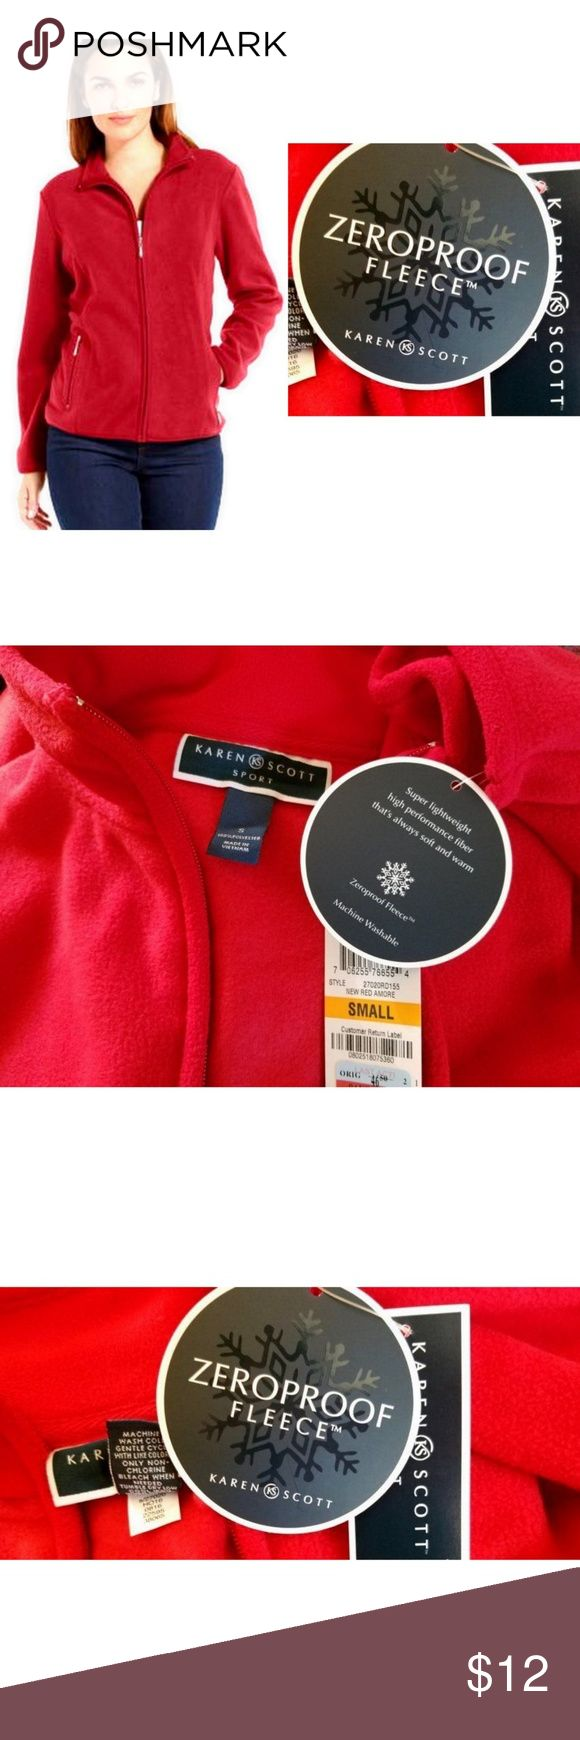 Karen Scott Zip-Front Fleece Active Jacket (Small) New with Tags Size: Small Color: New Red Amore  Made in Vietnam   Kindly SEE PHOTOS for detailed look and more information about the item. Actual color may slightly vary from what are seen in the photos due to lighting and photo editing. Karen Scott Jackets & Coats